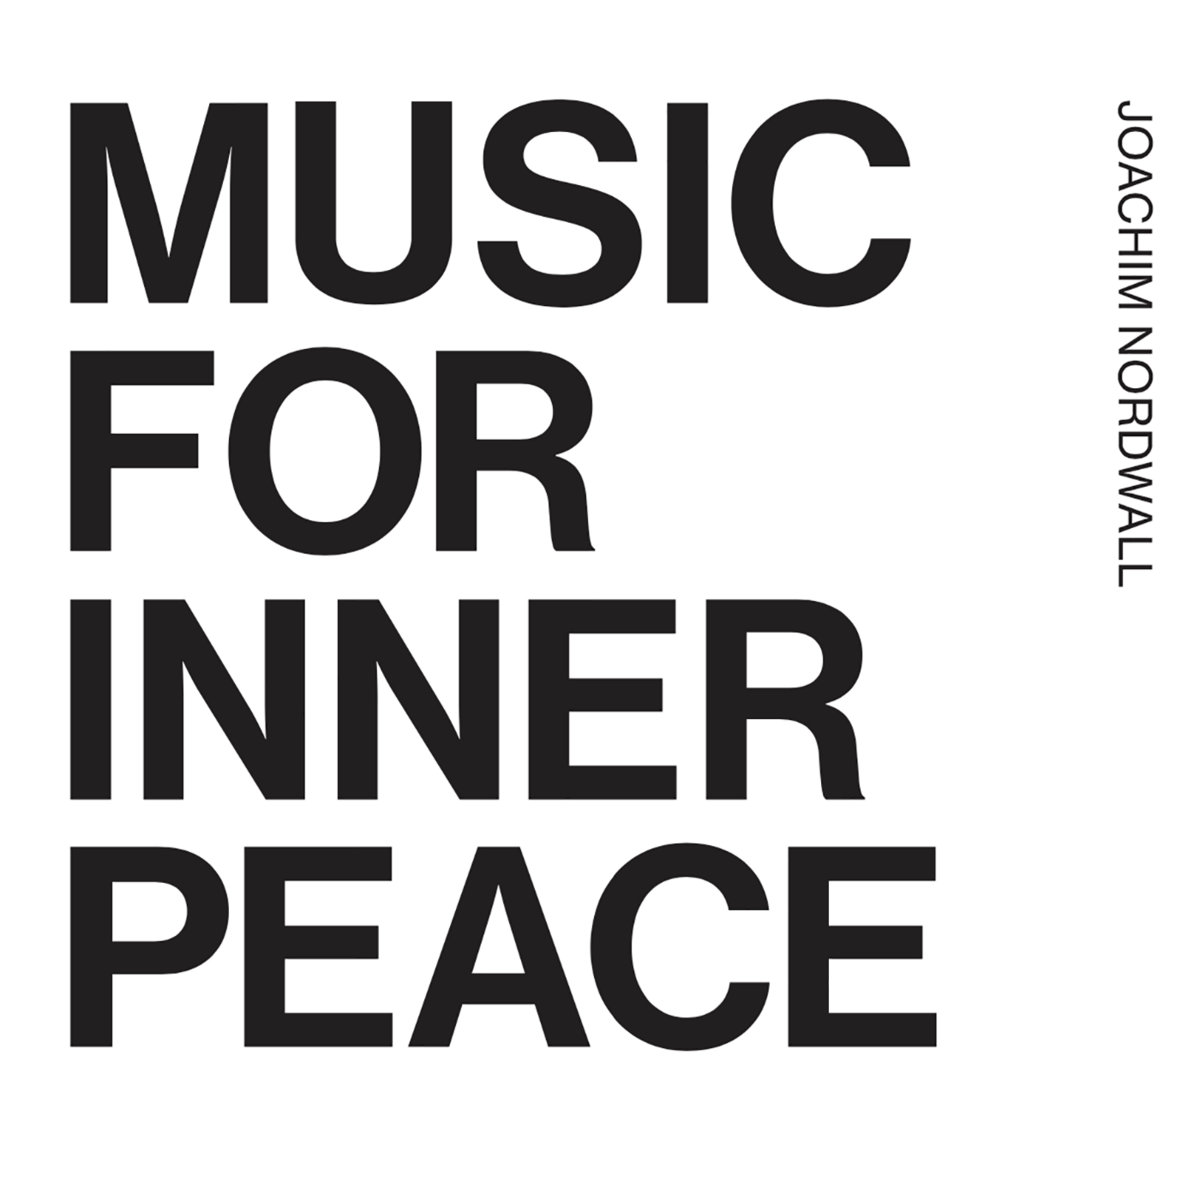 Music For Inner Peace and Outer Disturbance